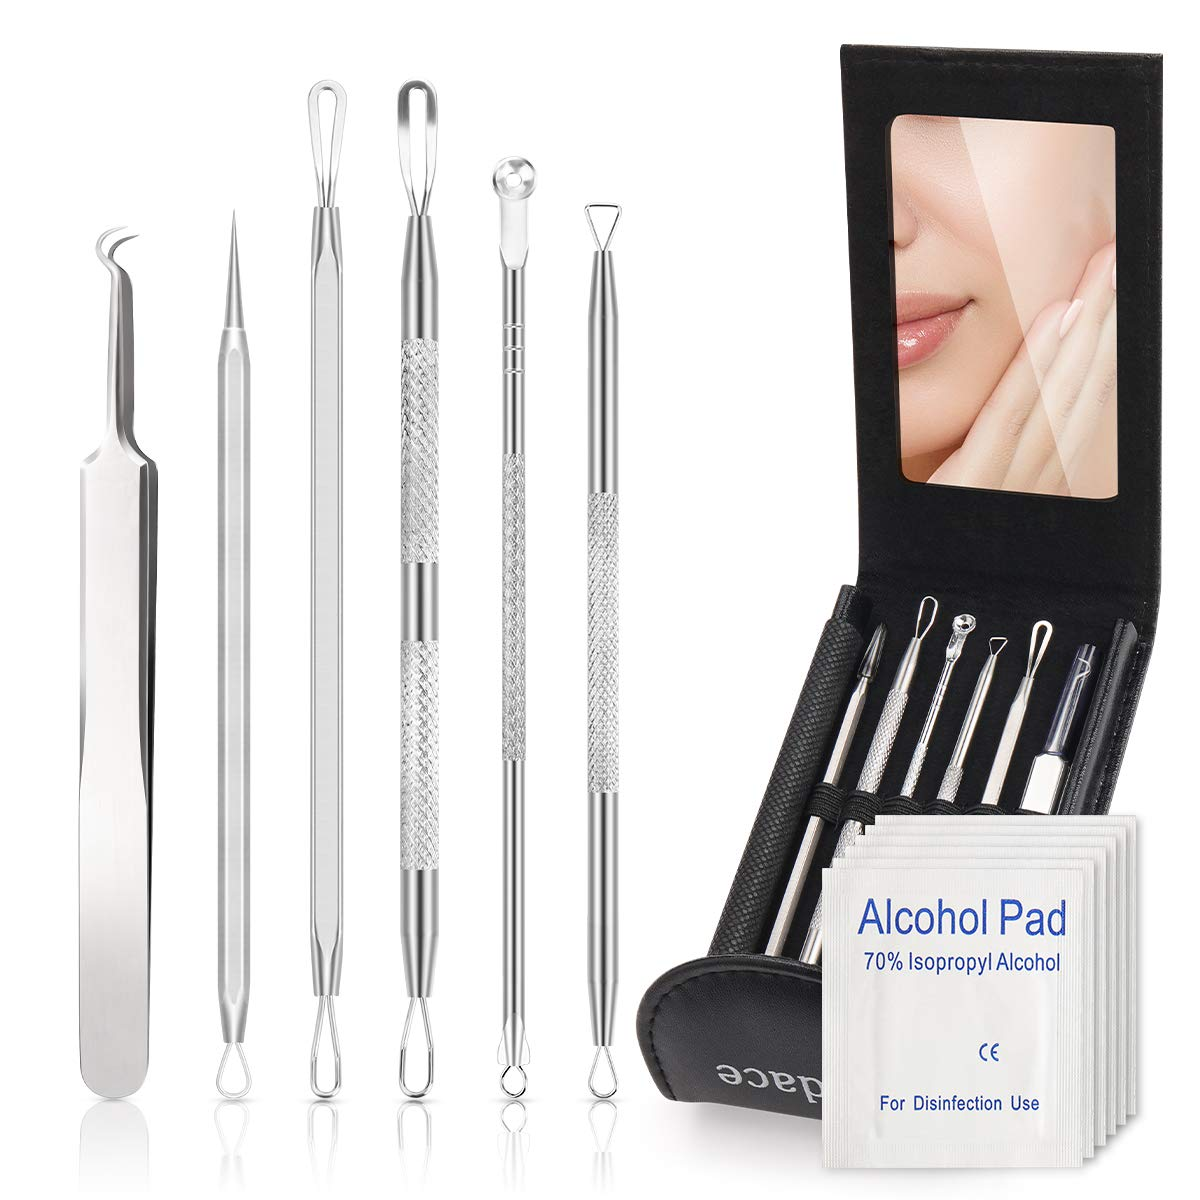 Amazon Com Pimple Popper Tool Kit Blackhead Remover Kit 6 Pcs Ingrown Hair Removal Kit White Heads Removers Pore Extraction Tool Facial Skin Acne Zit Tools With A Leather Bag And 6 Pcs Disinfectant Cotton Beauty